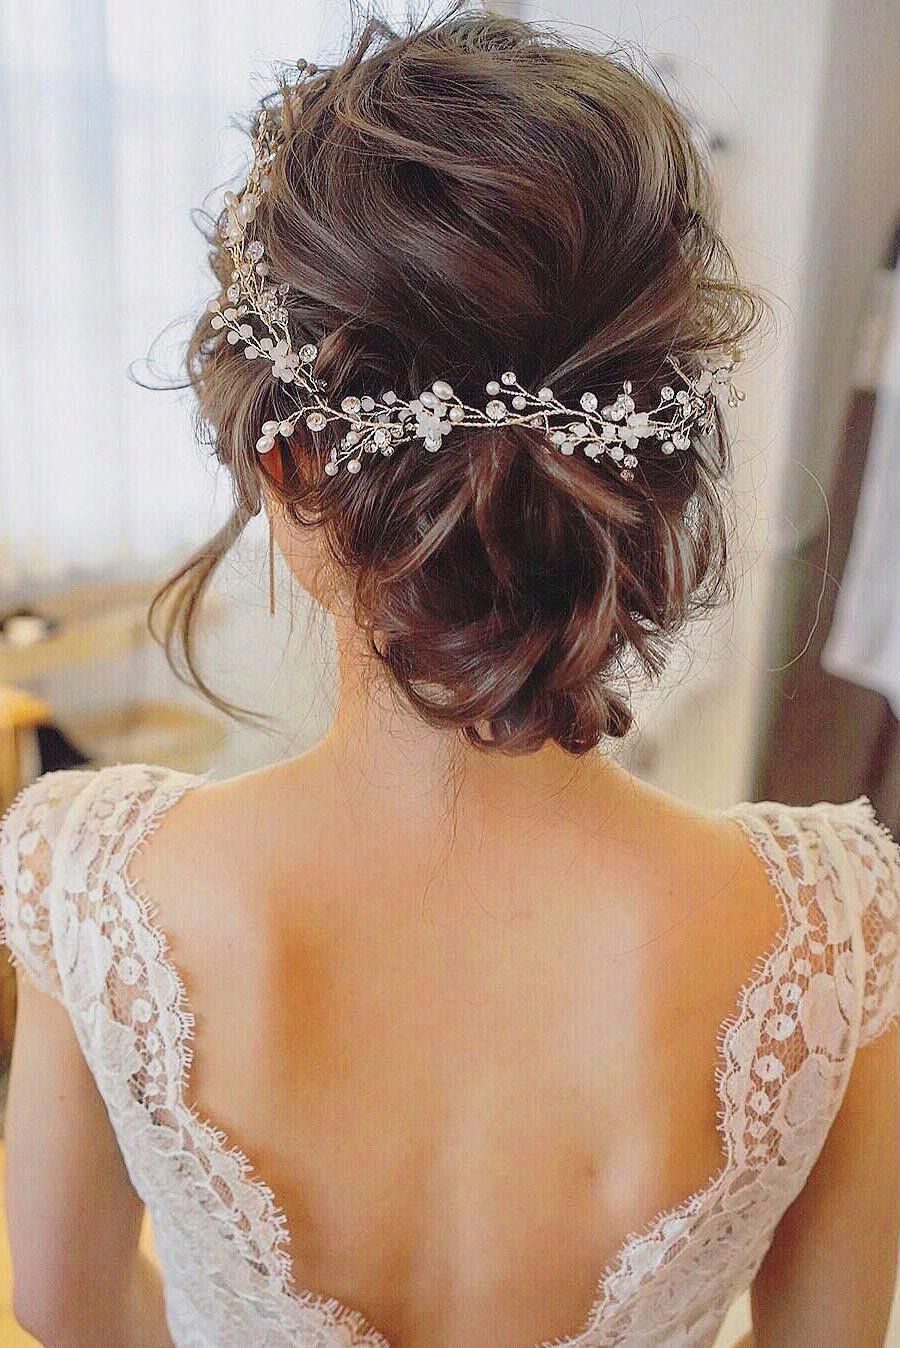 Find Out About Simple Short Hairstyles Shorthairstyletutorial Short Hair Bride Hair Styles Bridal Hair